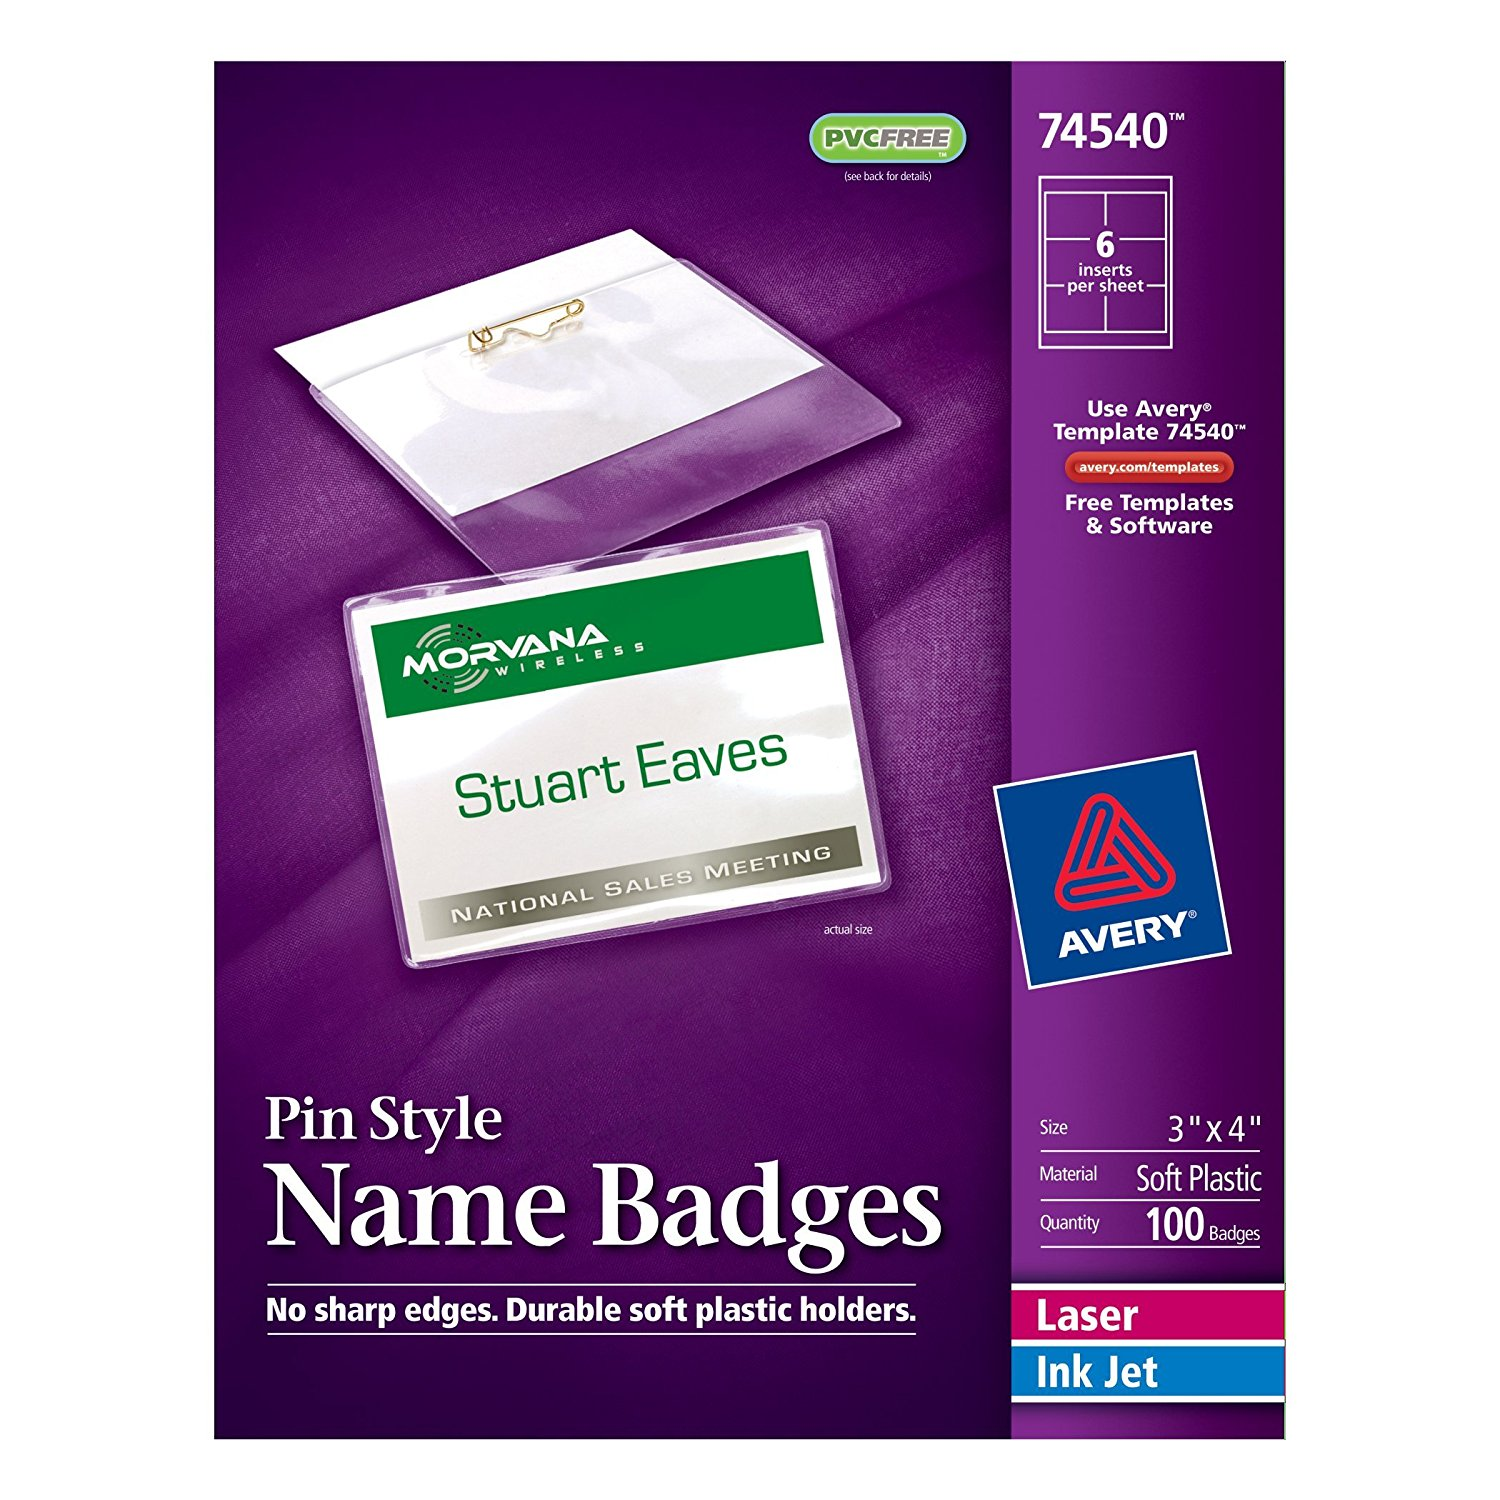 Top Loading Pin Style Name Badges 3 X 4 Box Of 100 74540 Includes White Badge Inserts And Clear Durable Plastic Holders With Pins By